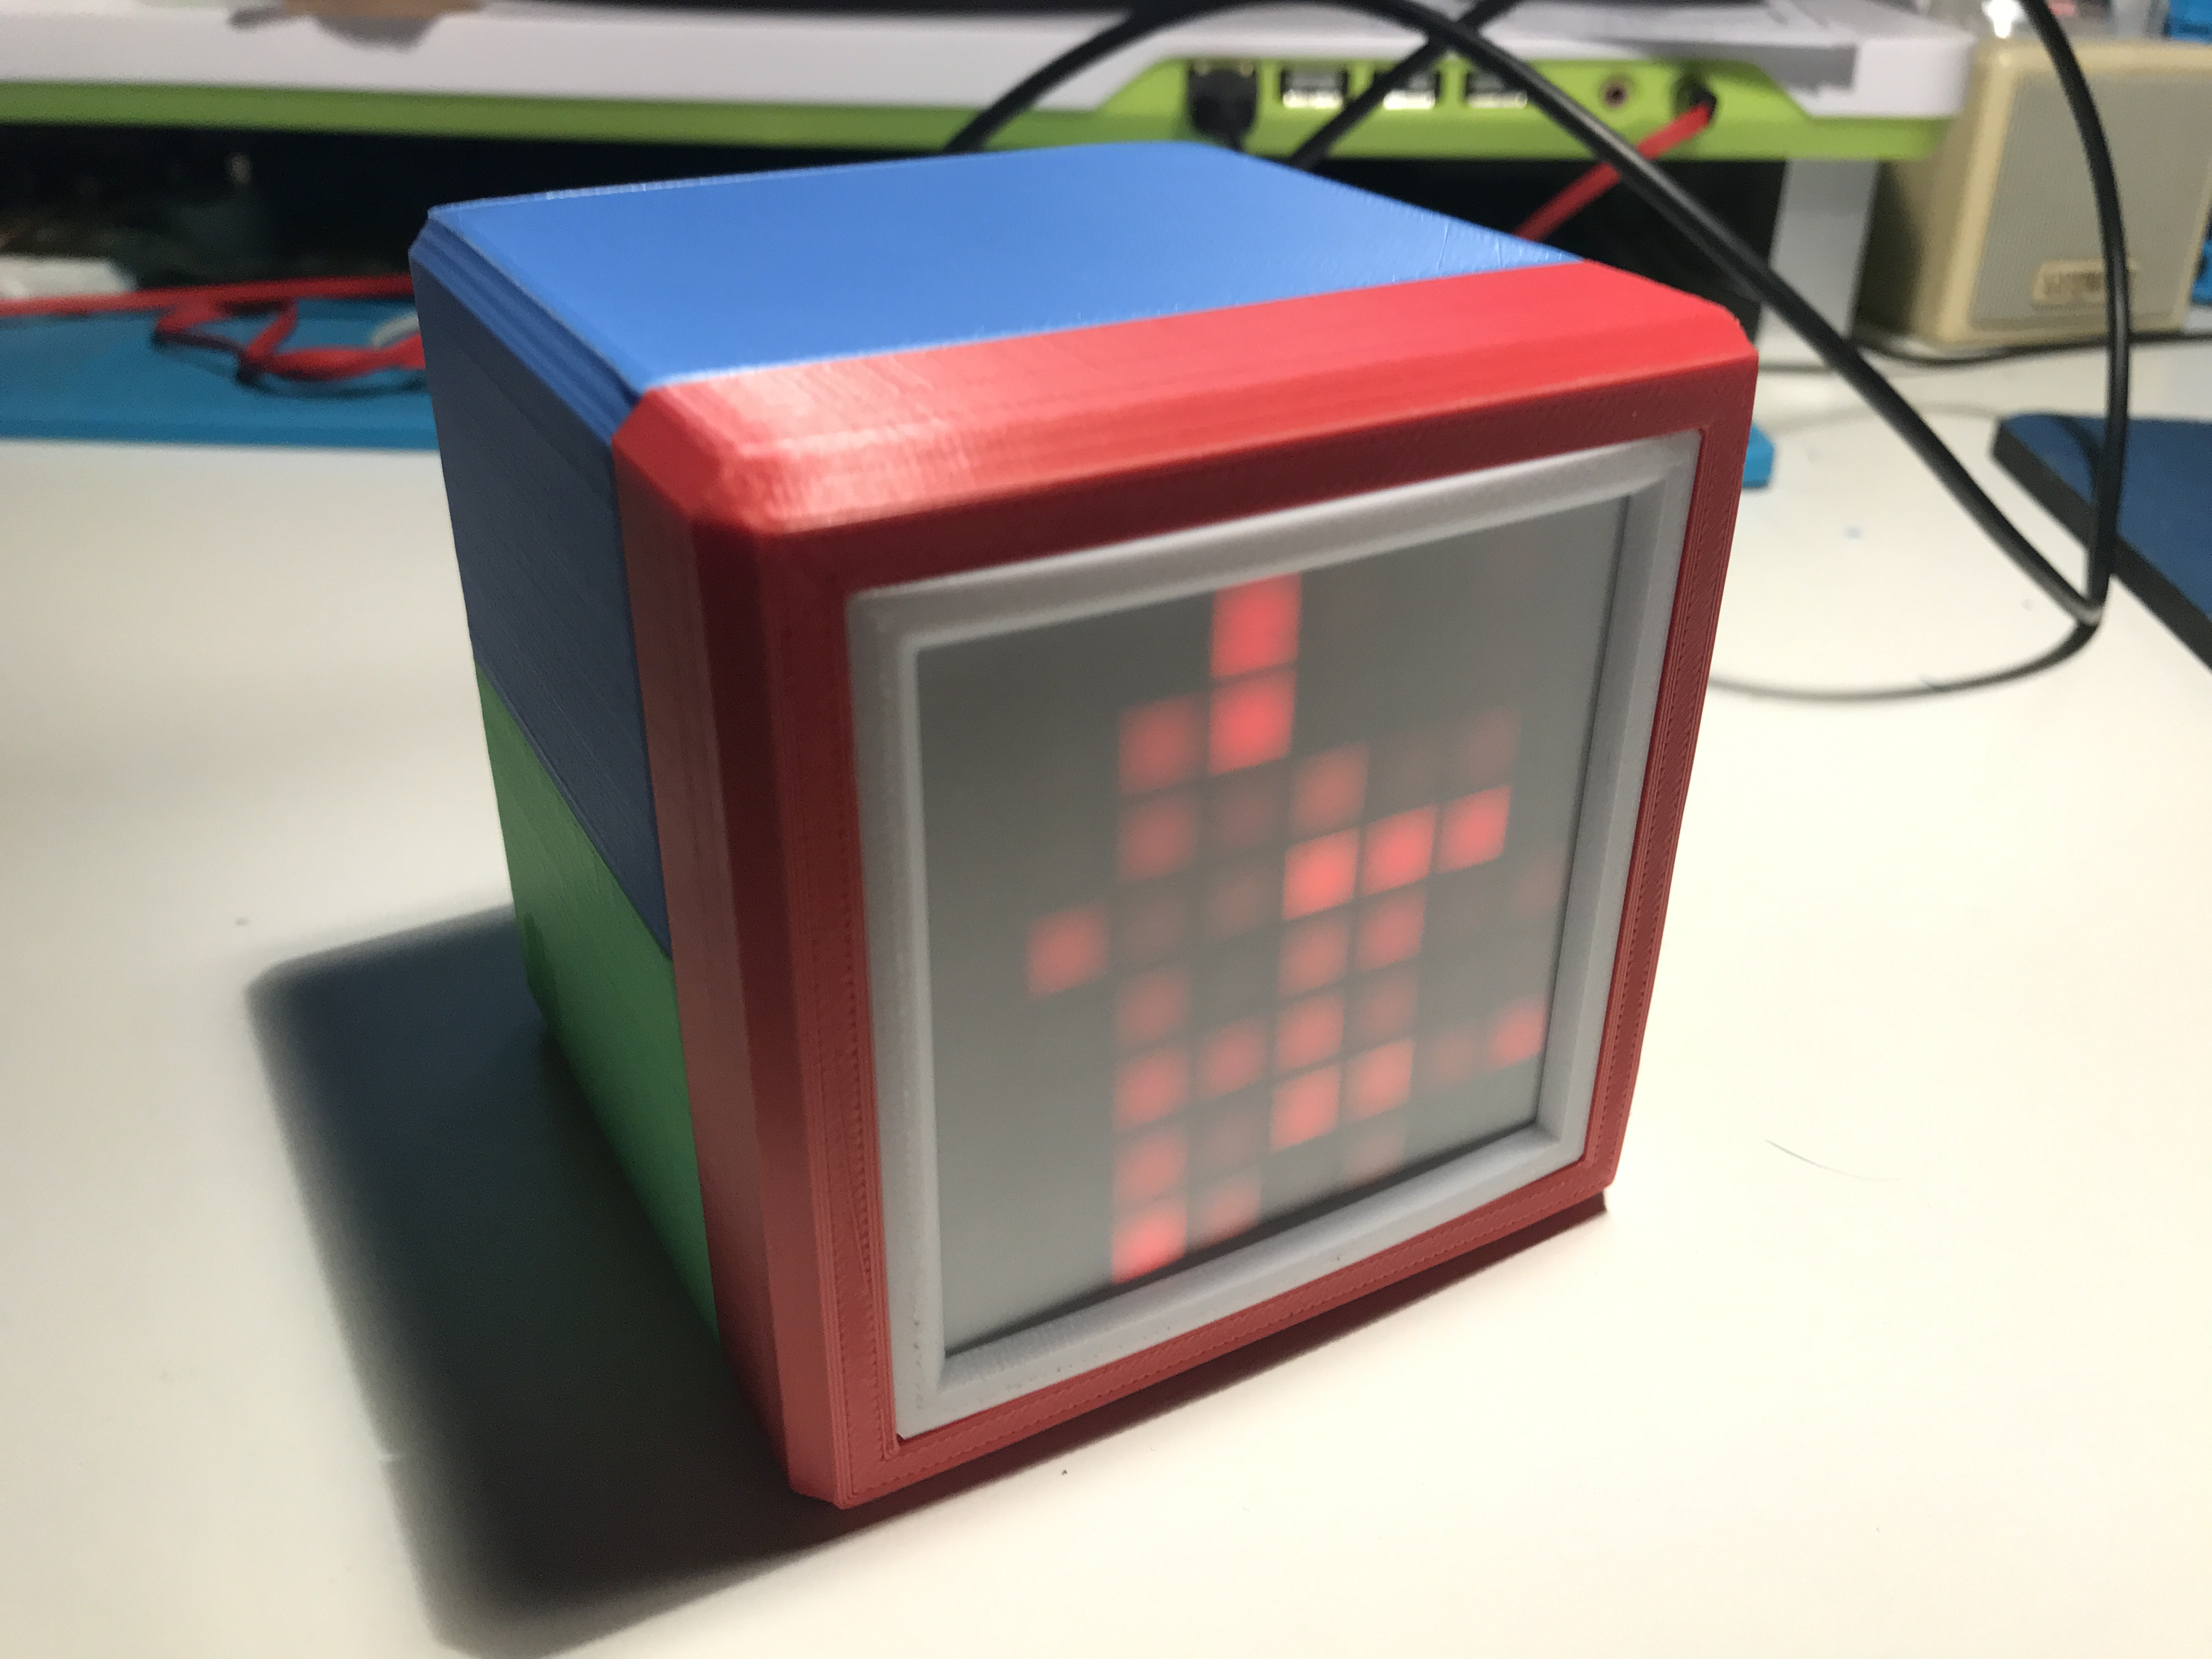 Picture of RGB Box Clock